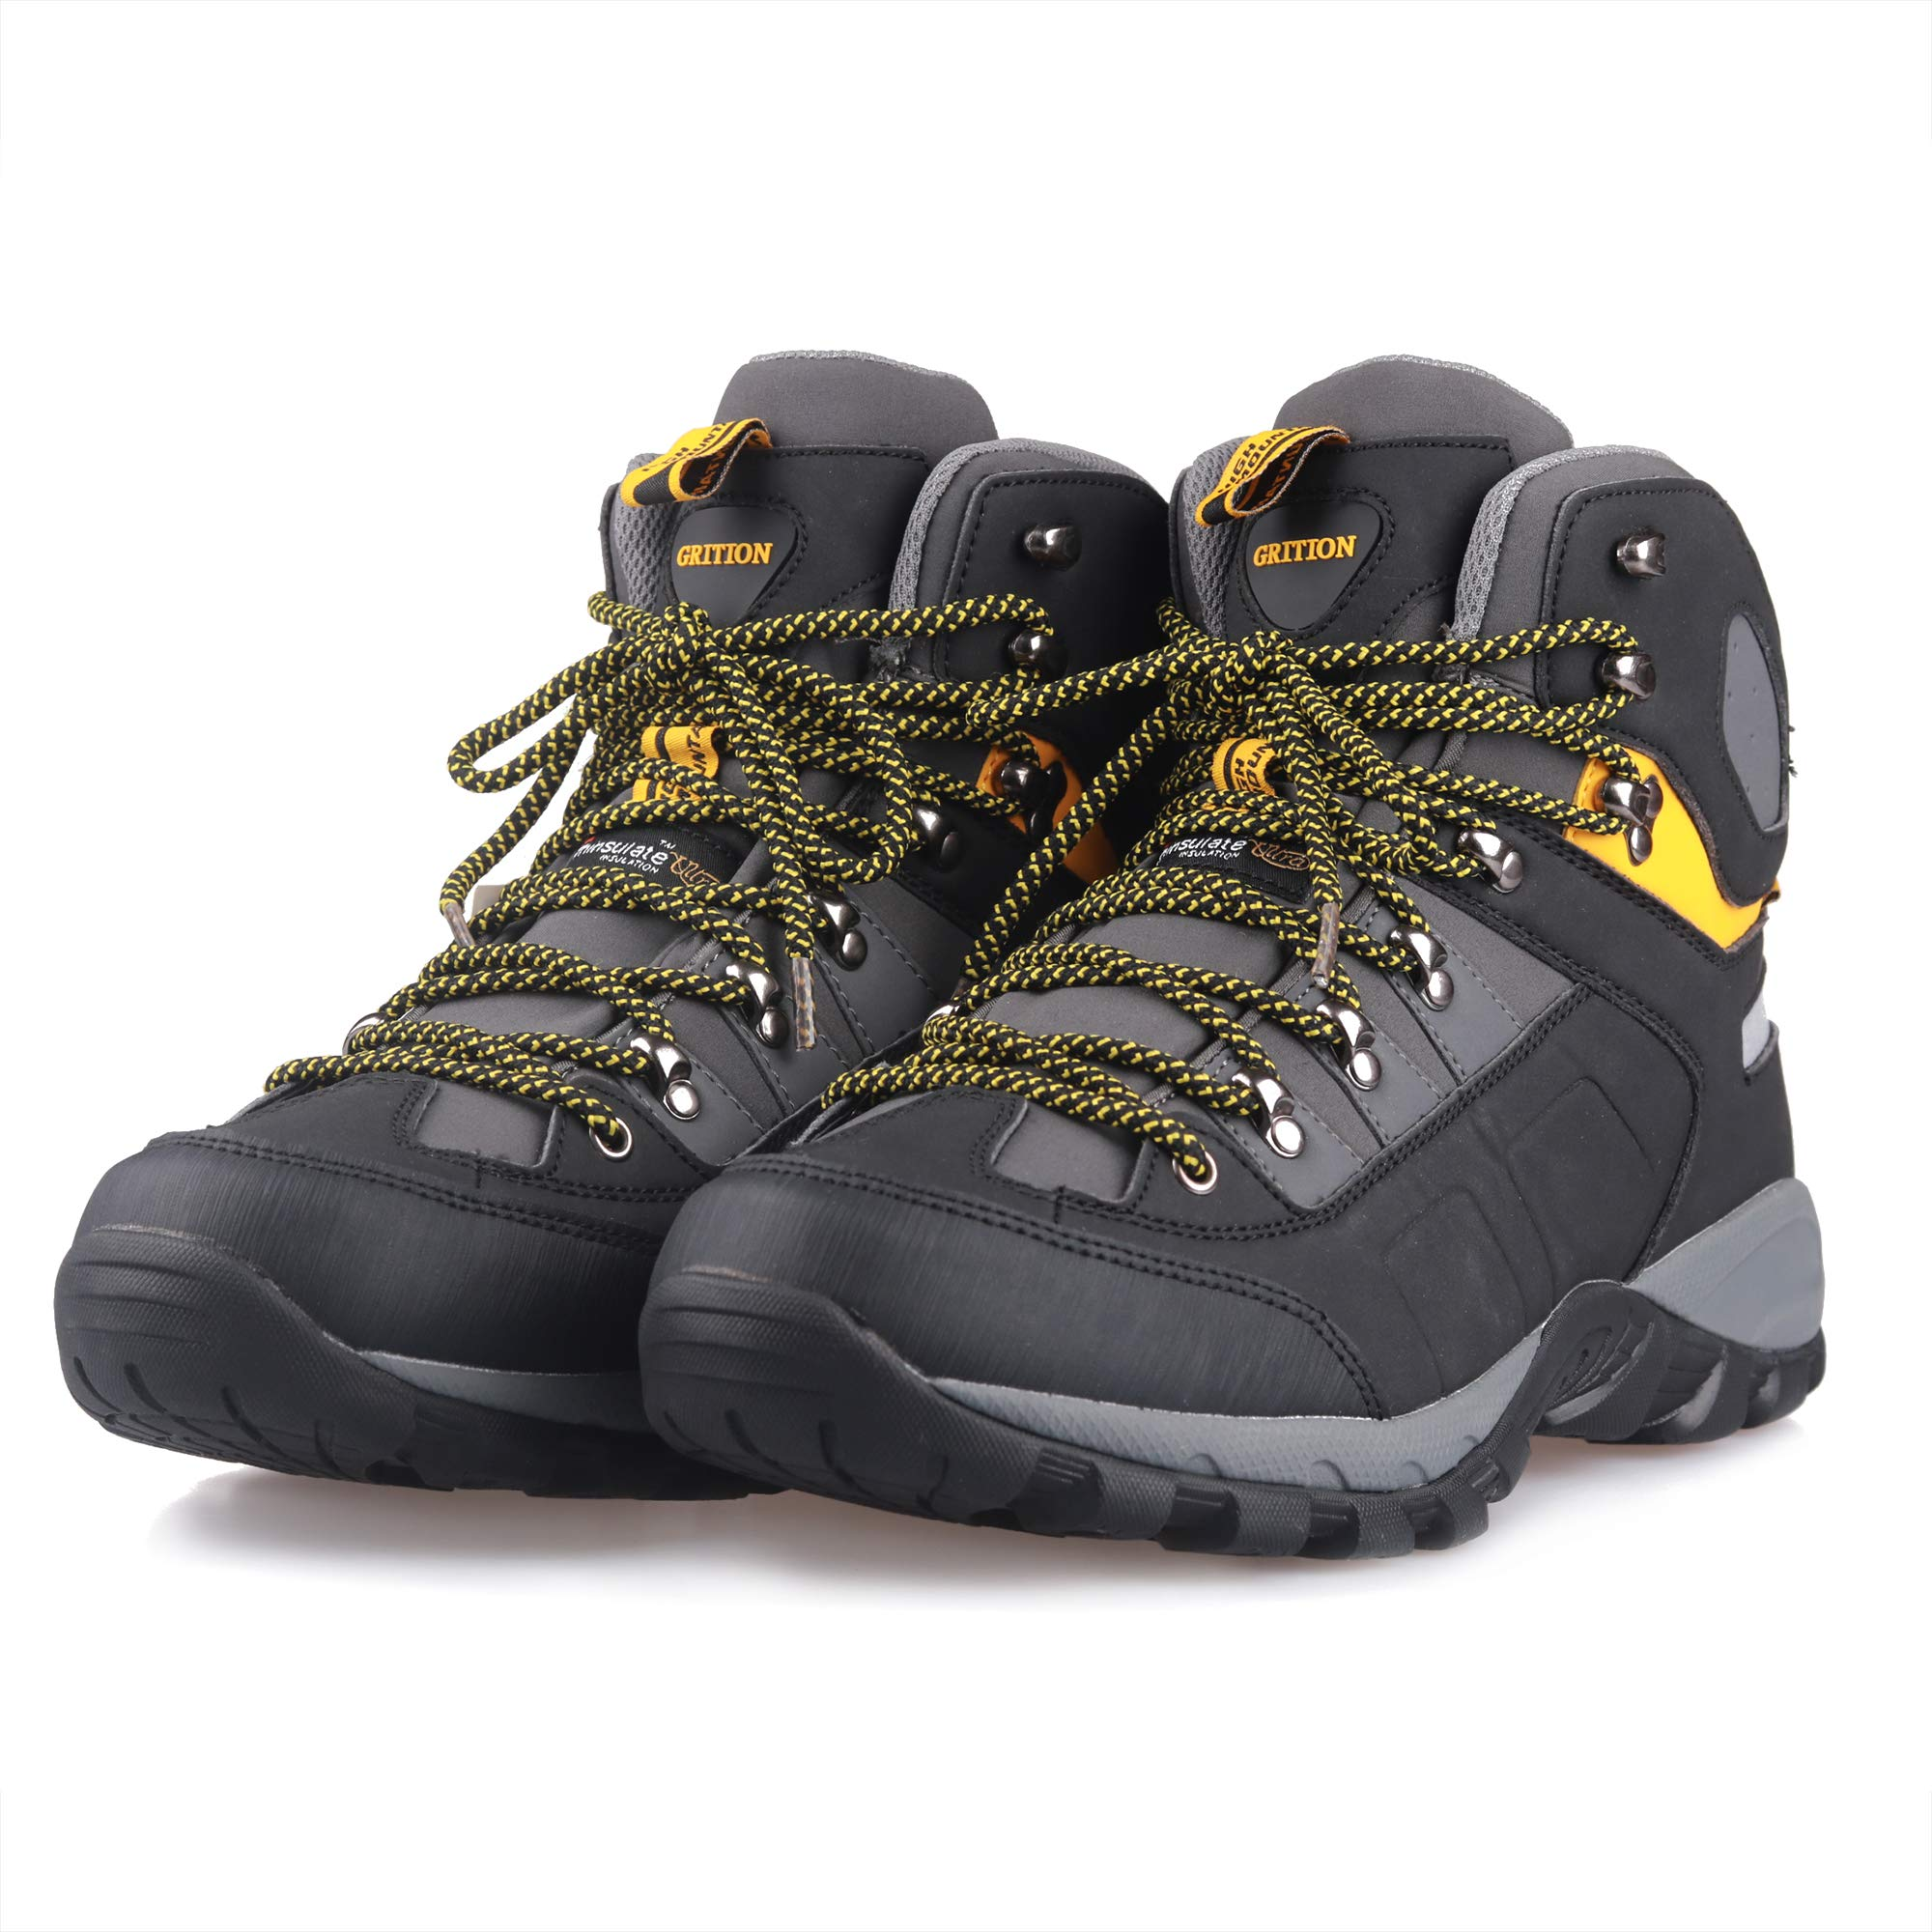 GRITION Men Hiking Boots Waterproof High Top Walking Non Slip Soft Shell Trekking Shoes Black/Yellow by GRITION (Image #7)